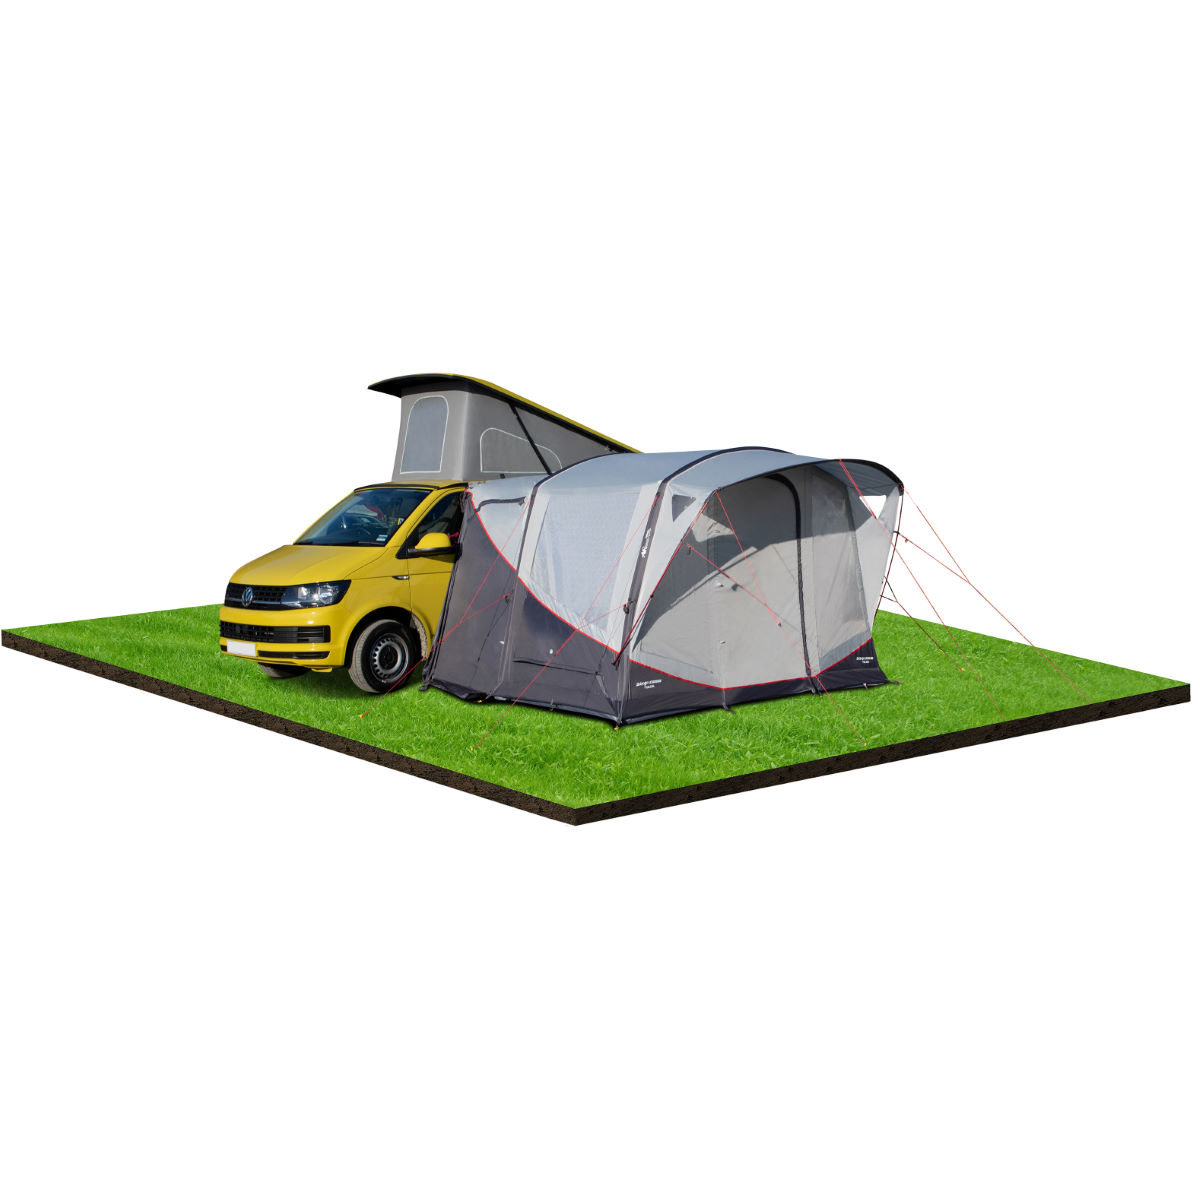 Vango Vango Tolga Air VW Awning   Inners and Floors